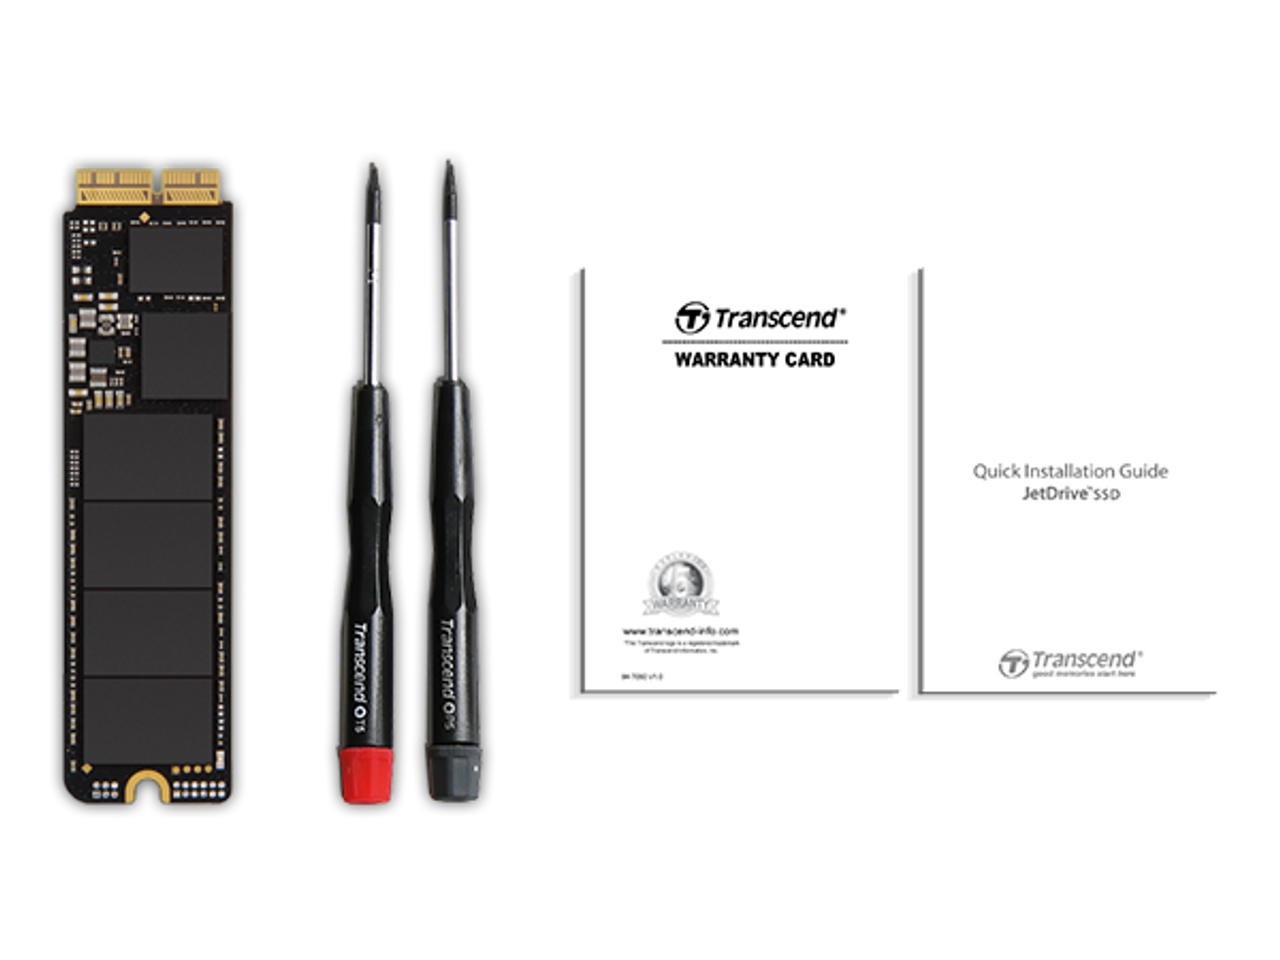 Transcend Jetdrive 820, 480GB SSD Upgrade Kit for MacBook Air Mid 2013 - 2017,MacBook Pro (Retina) Late 2013 - Mid 2015, Mac mini Late 2014 and Mac Pro Late 2013